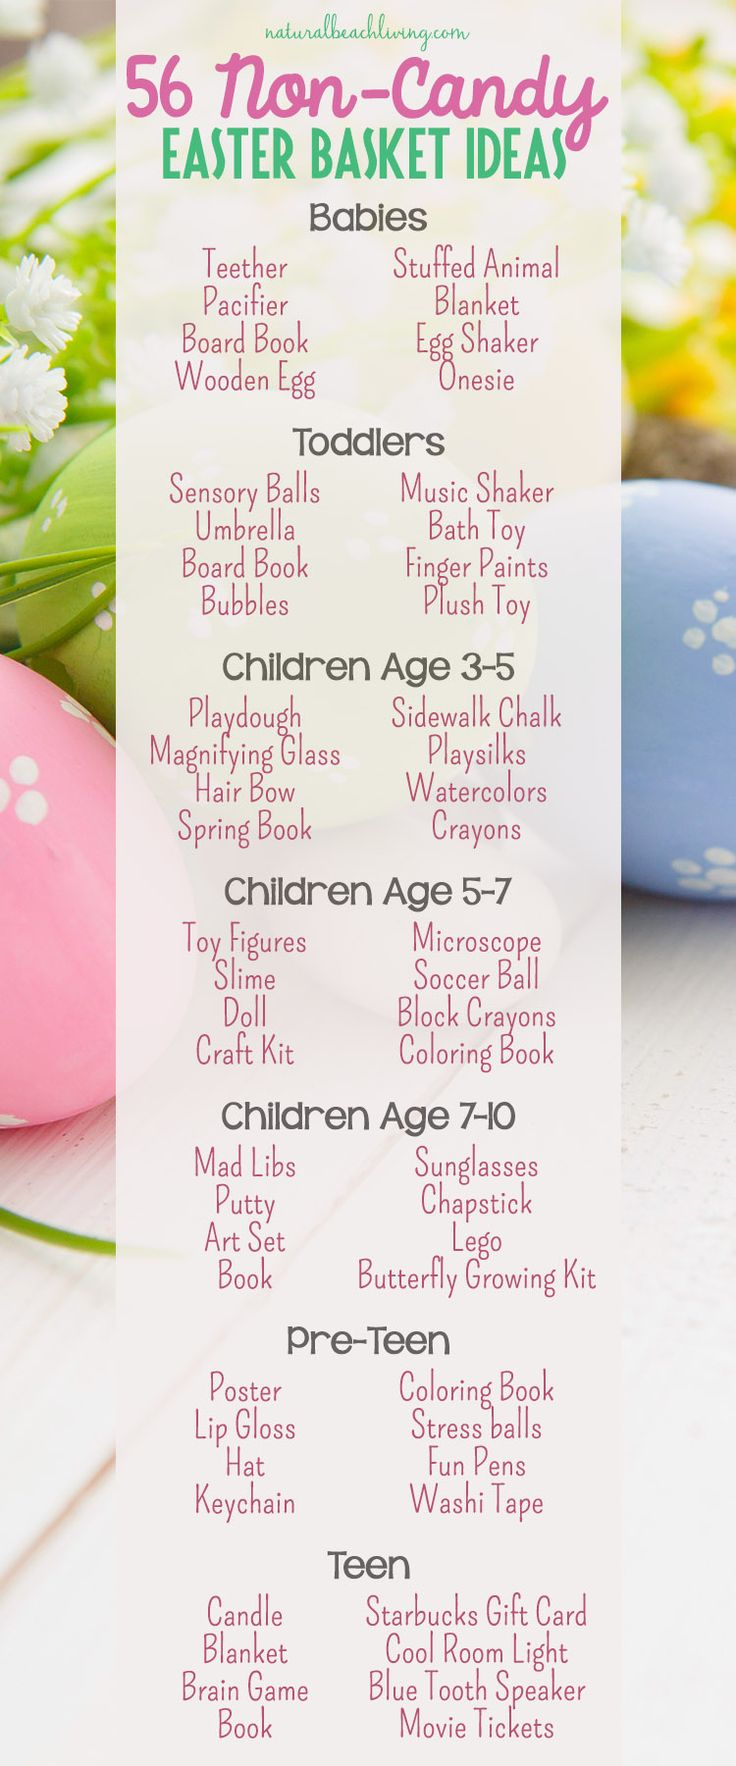 543 best gift ideas images on pinterest happiness learning 56 non candy easter basket ideas for kids negle Choice Image